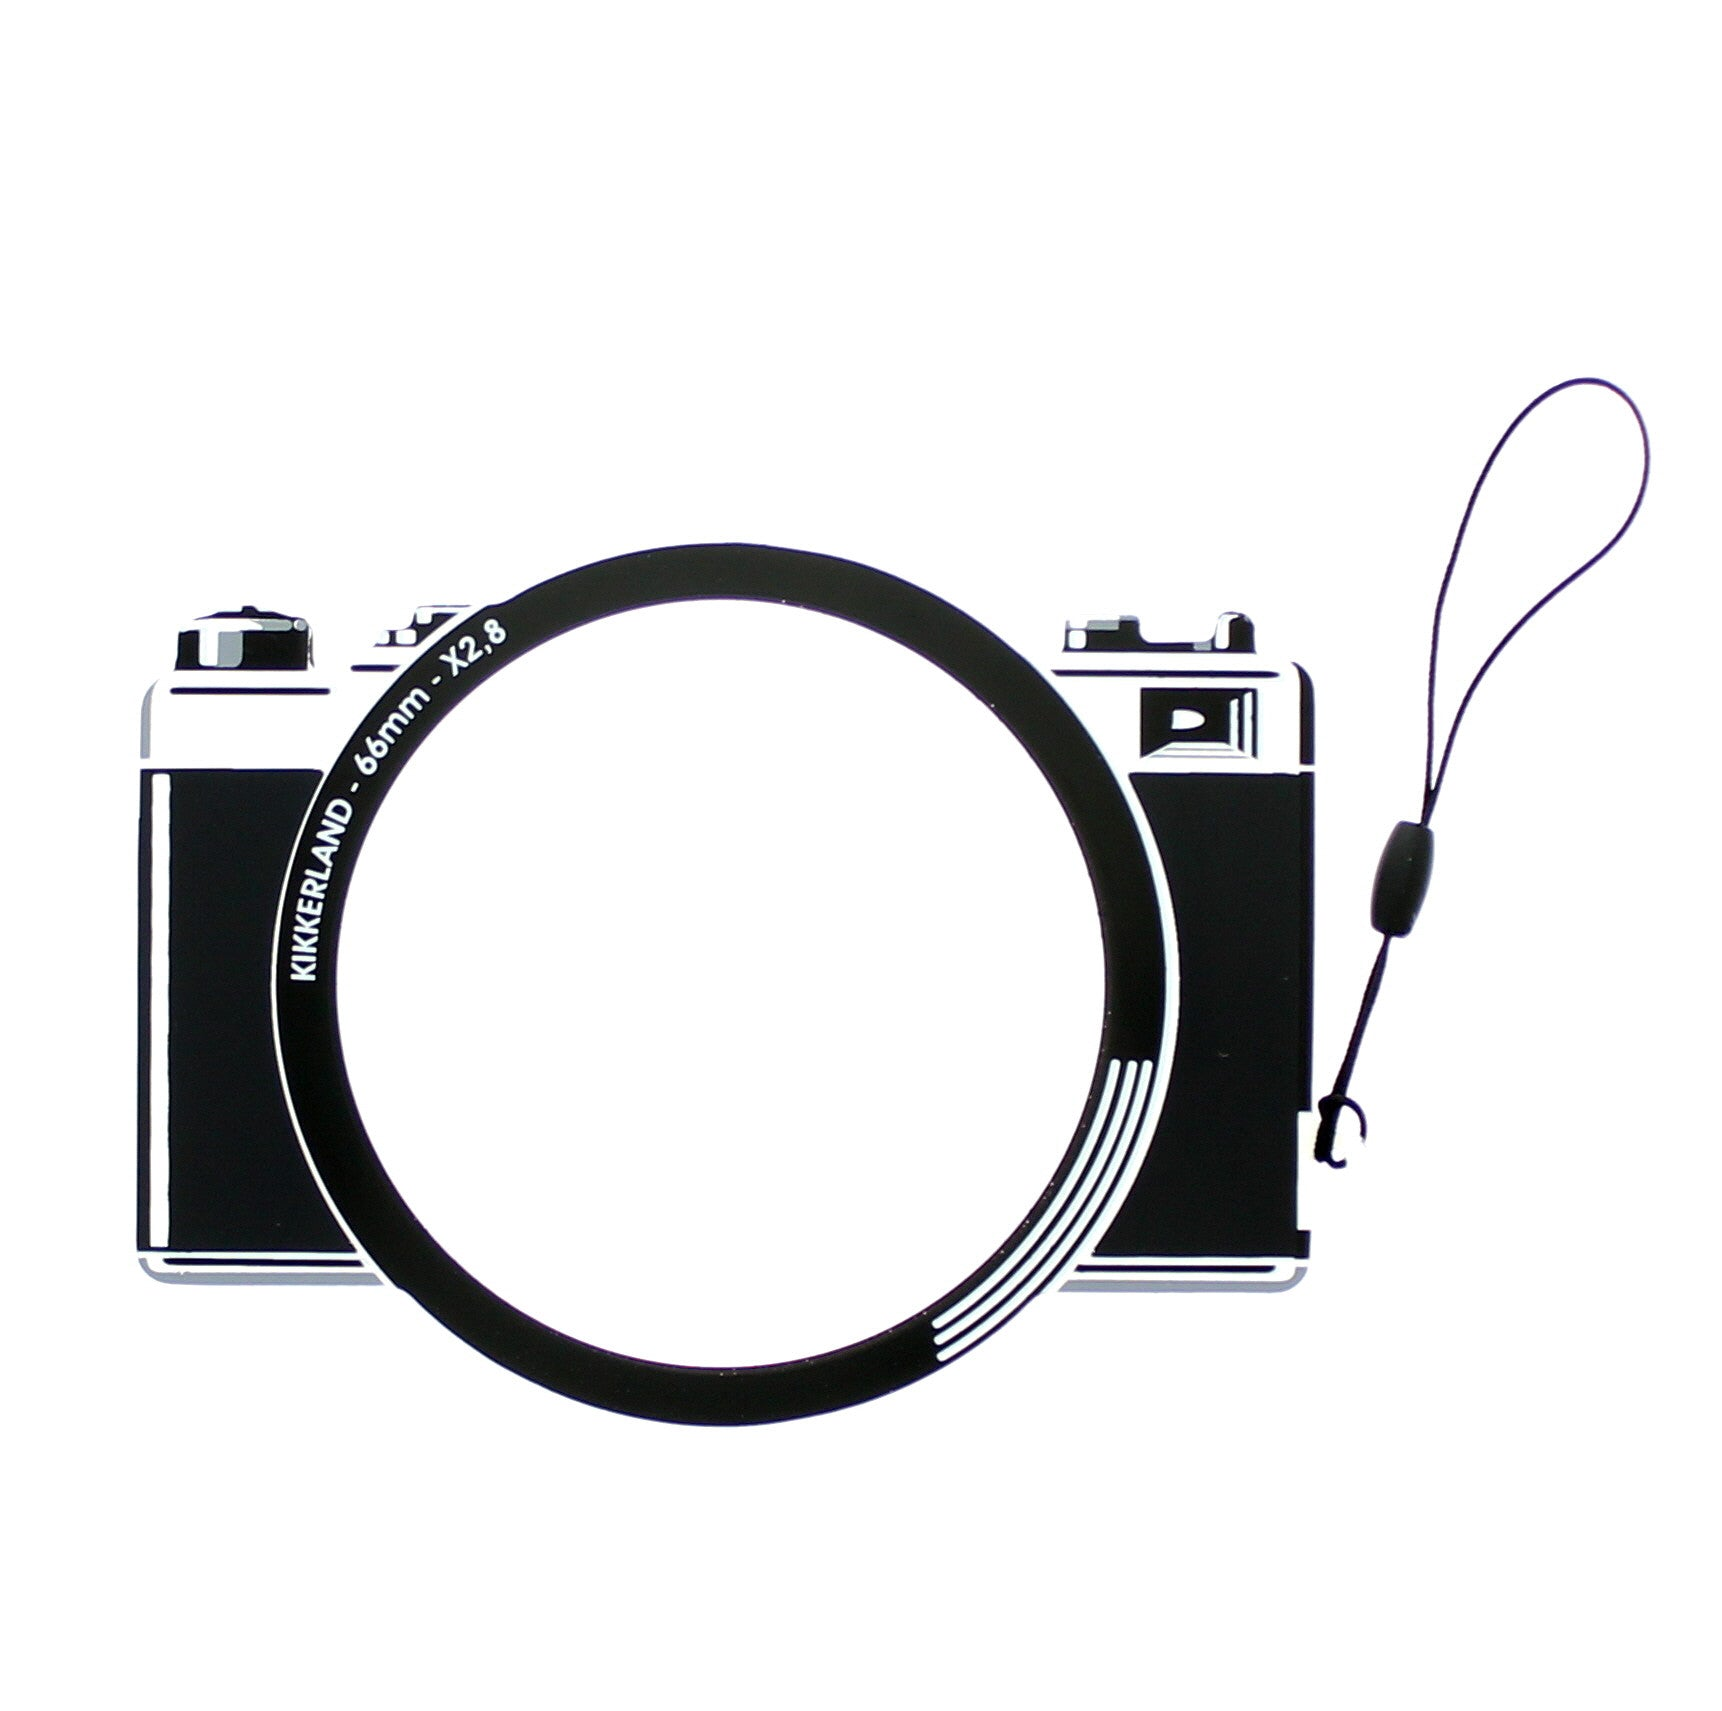 Camera Bookmark Magnifier